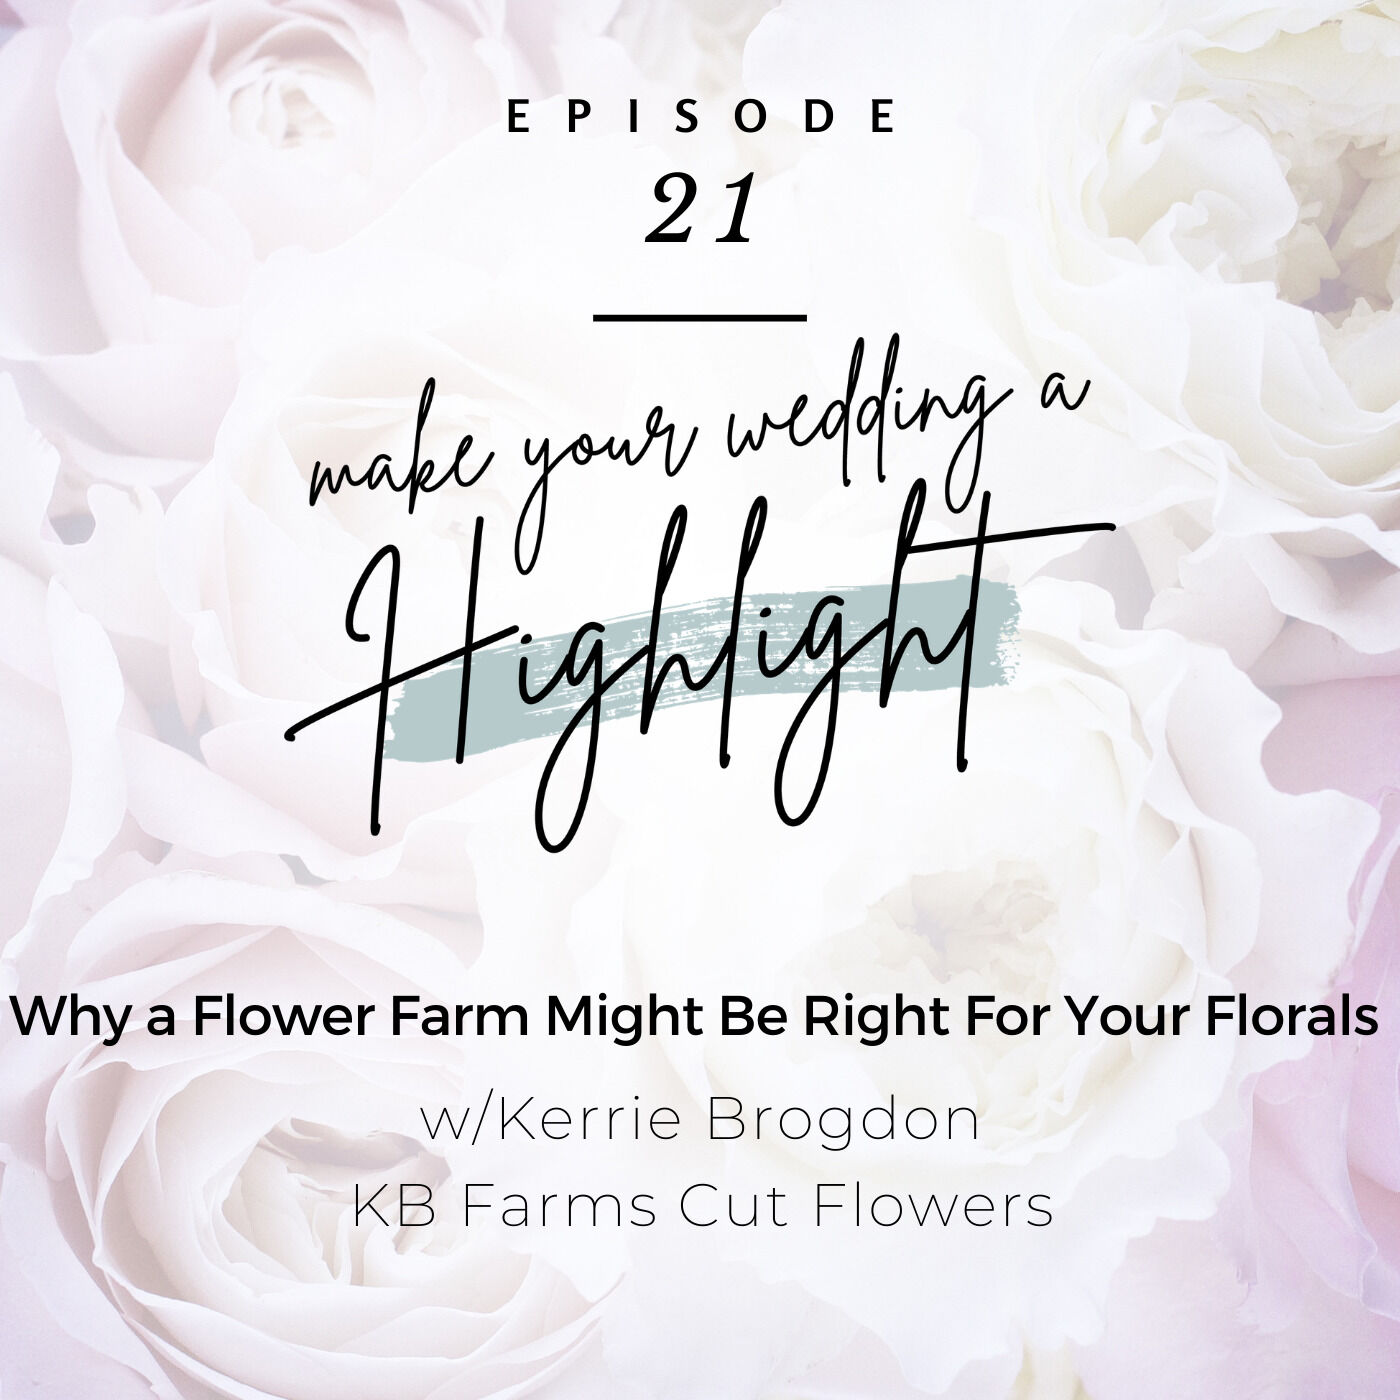 Why a Flower Farm Might Be Right For Your Florals